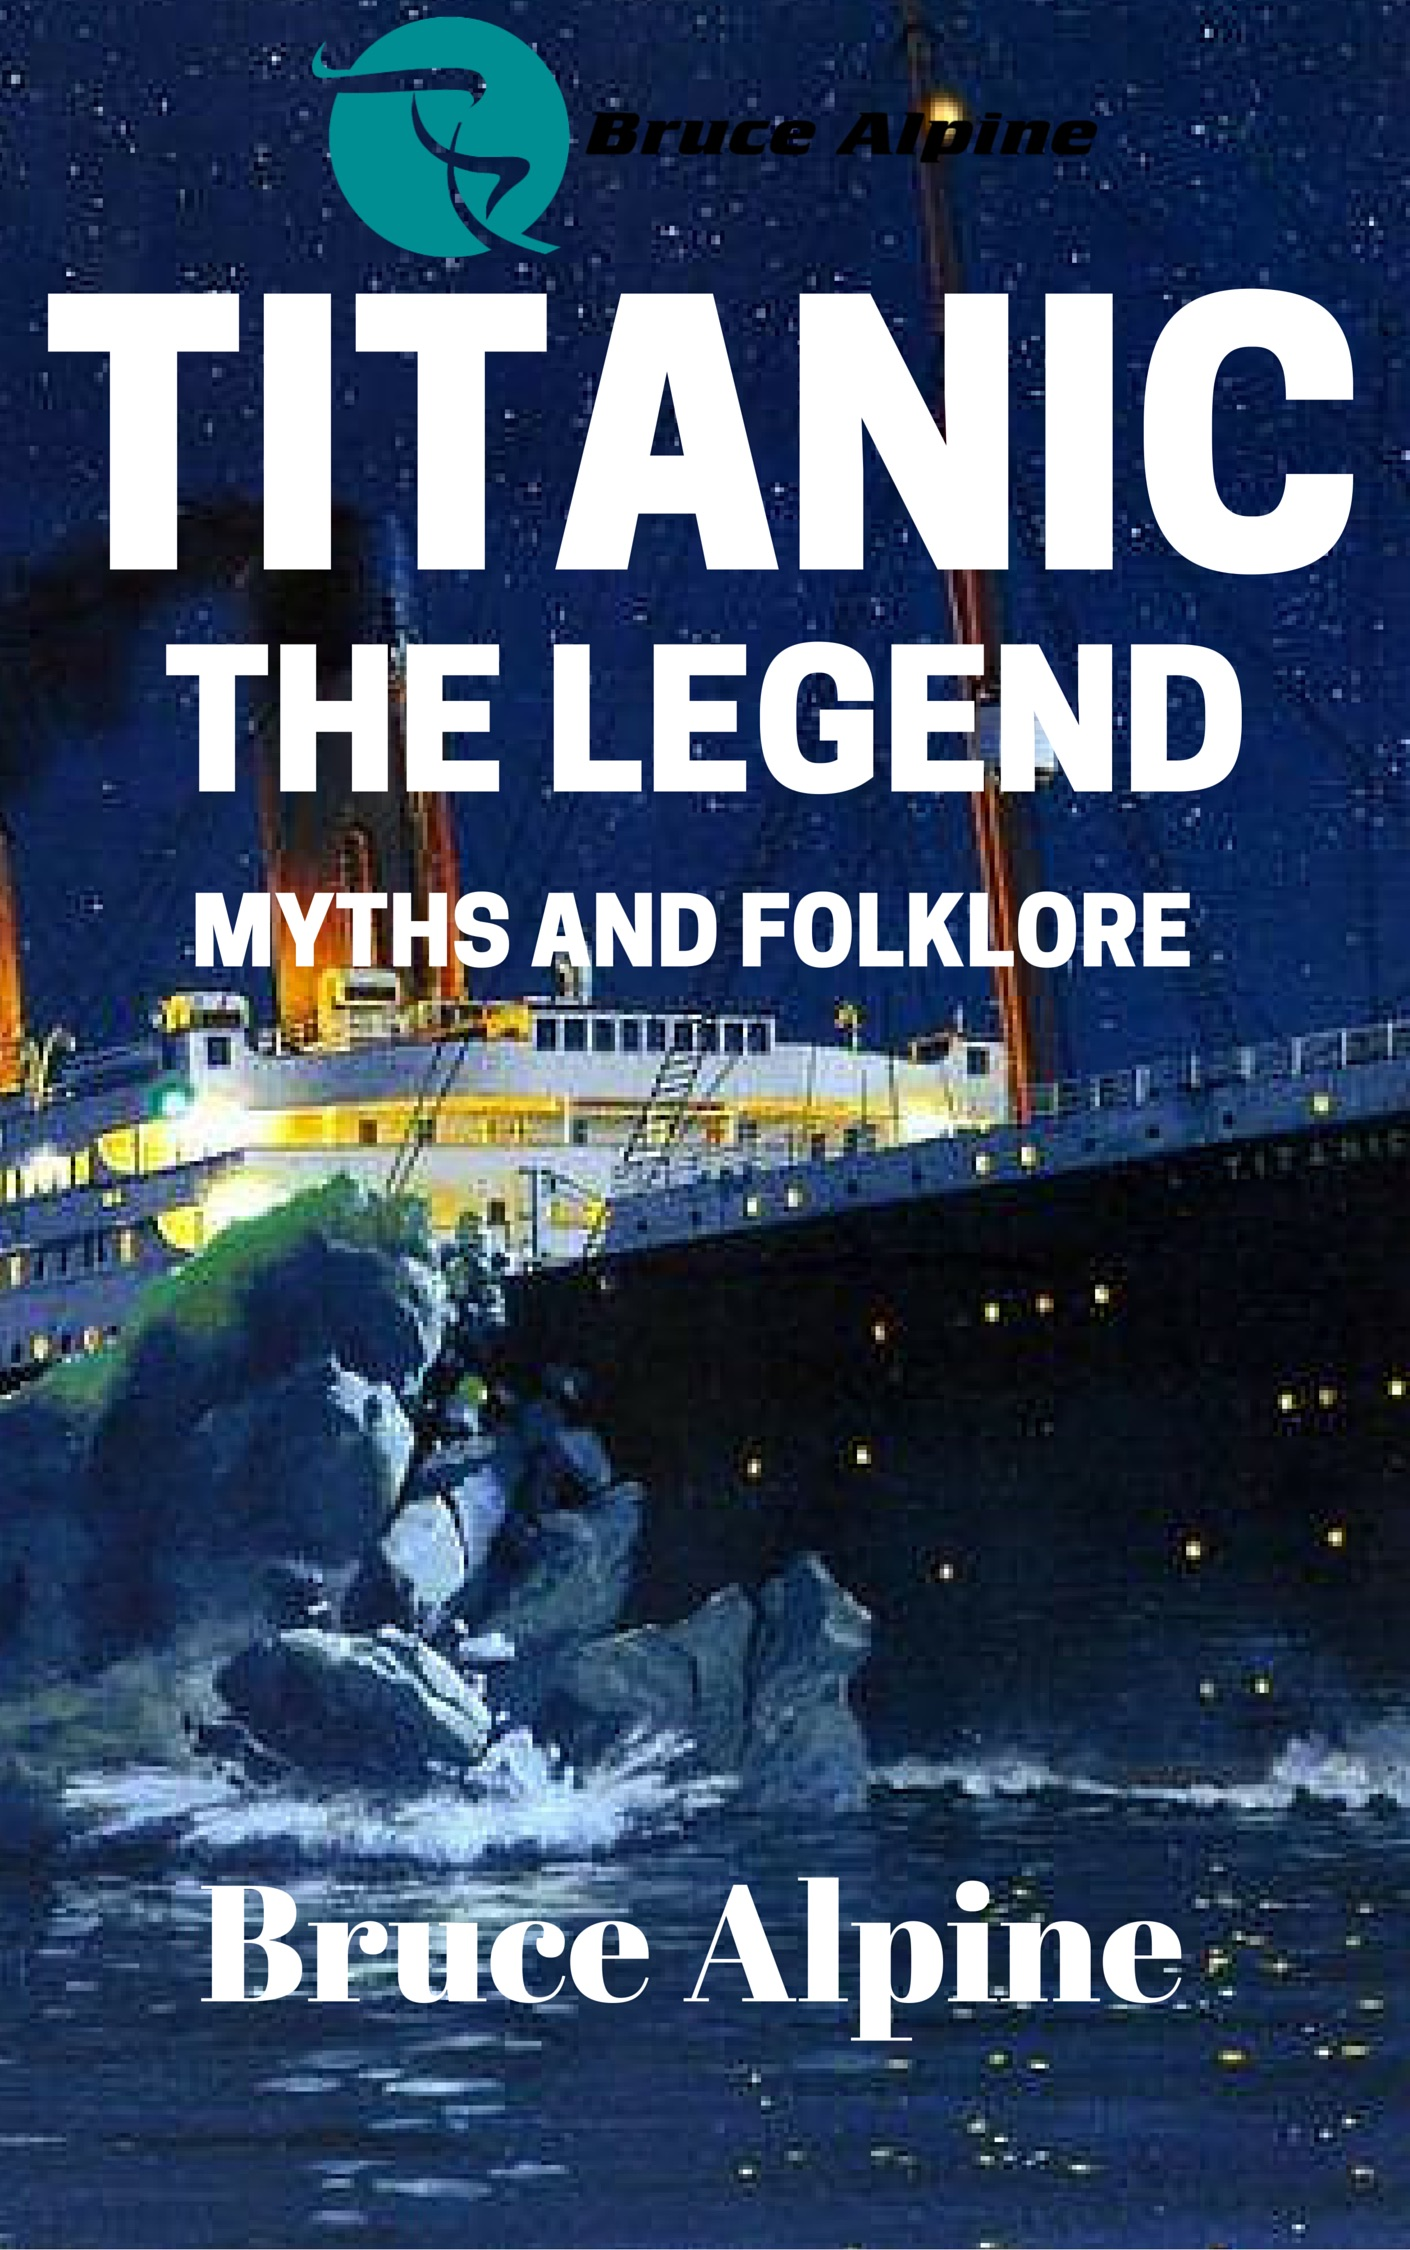 Cover image for TITANIC: The Legend, myths and folklore